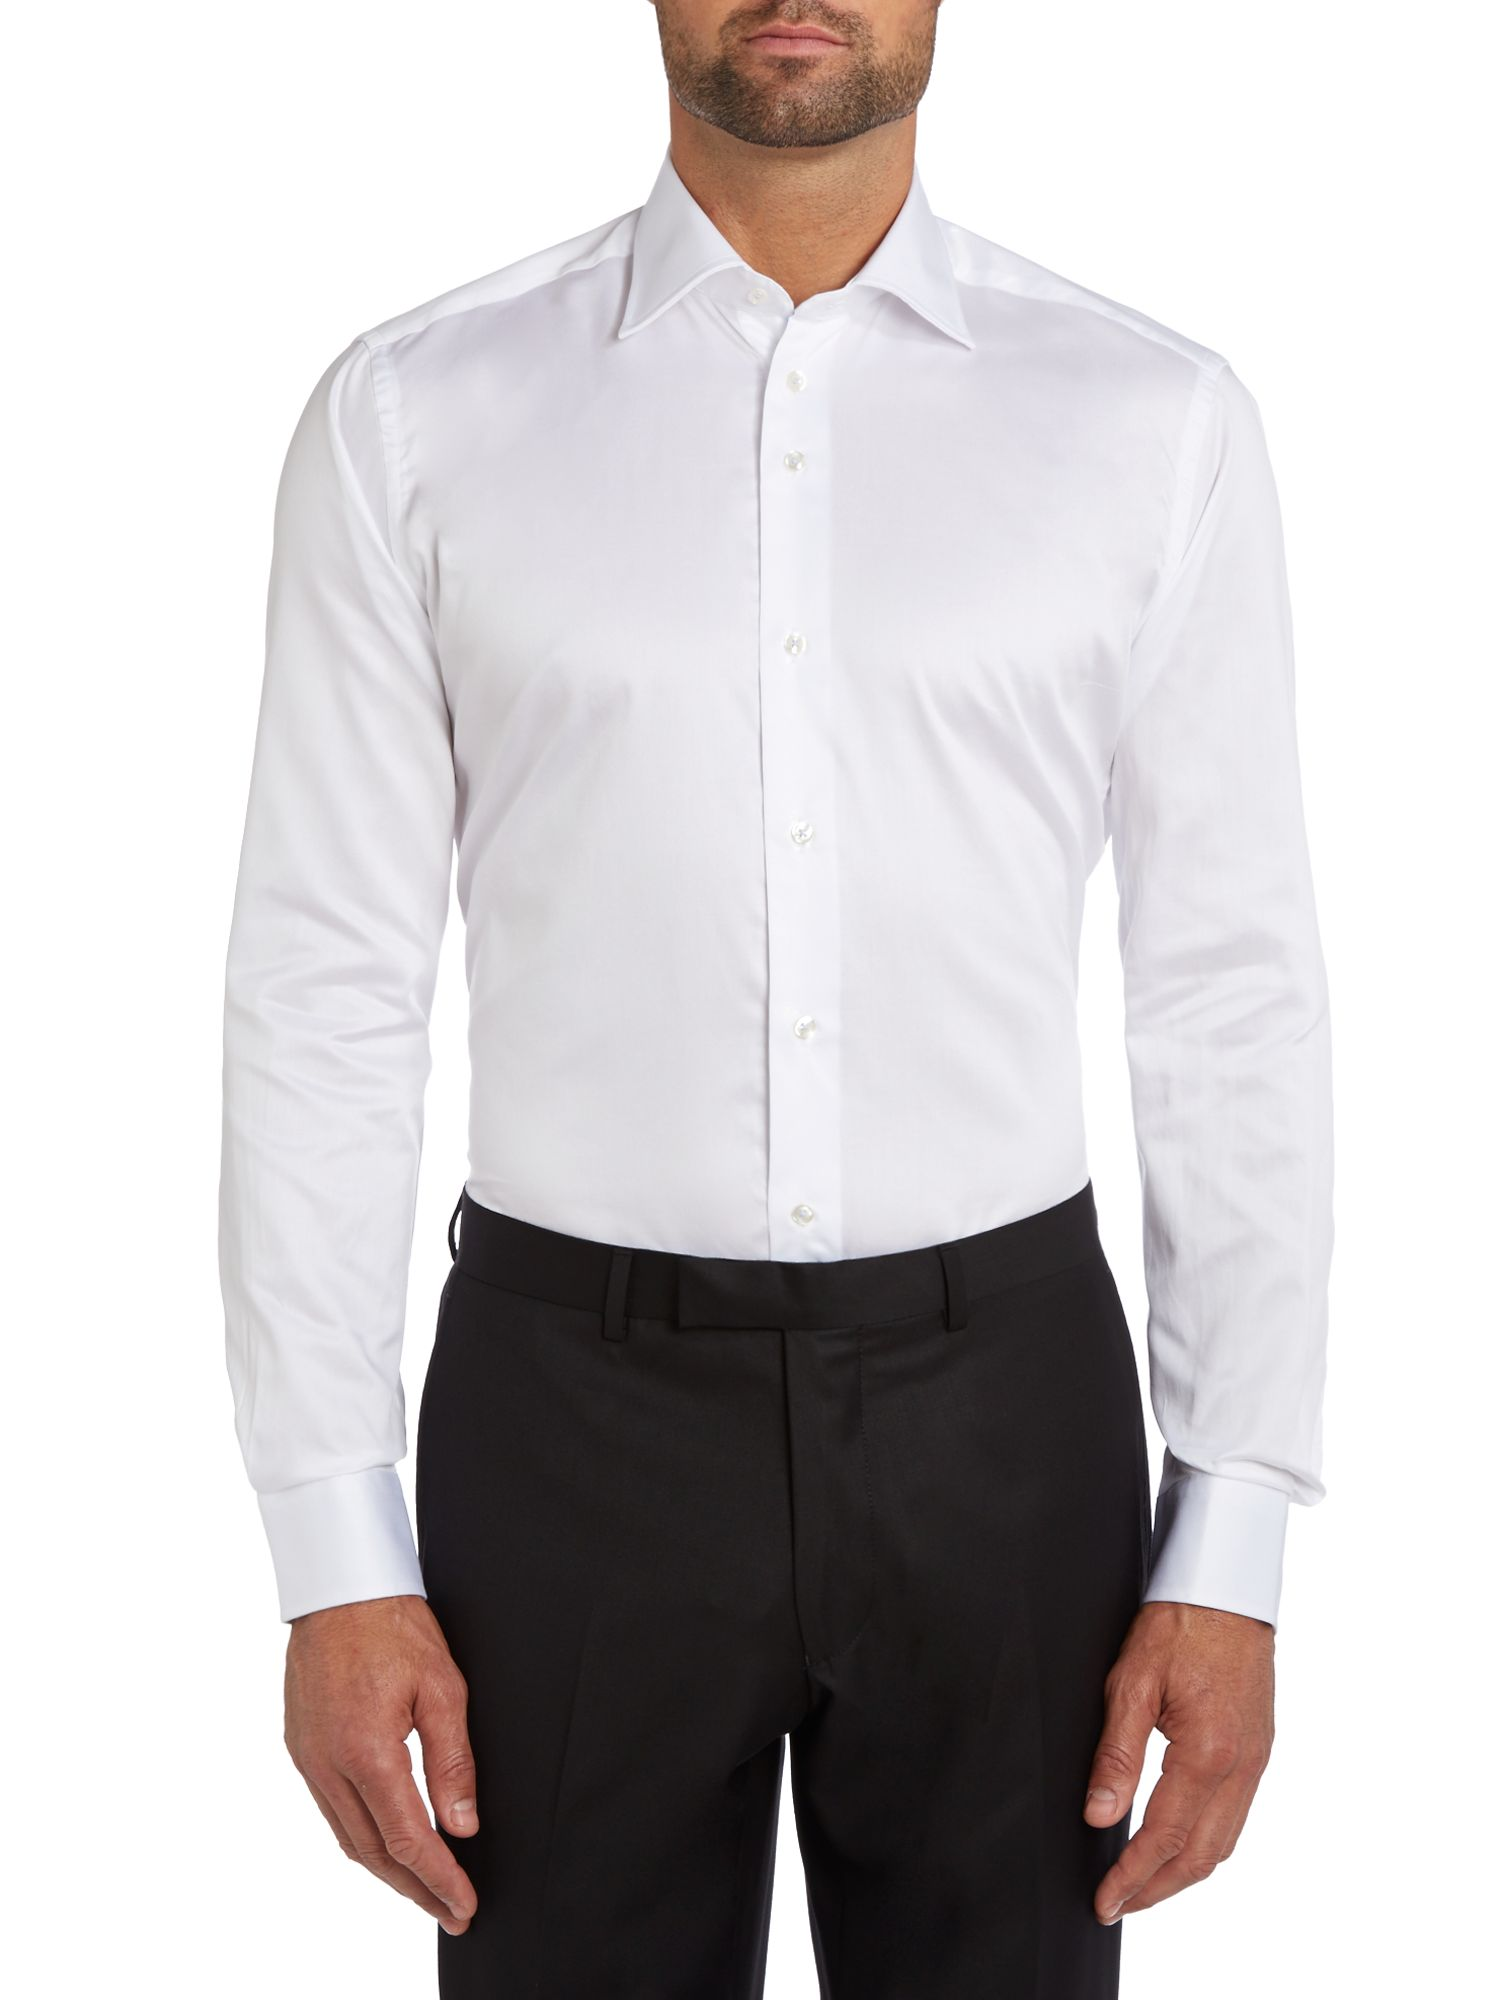 Plain long sleeve formal shirt